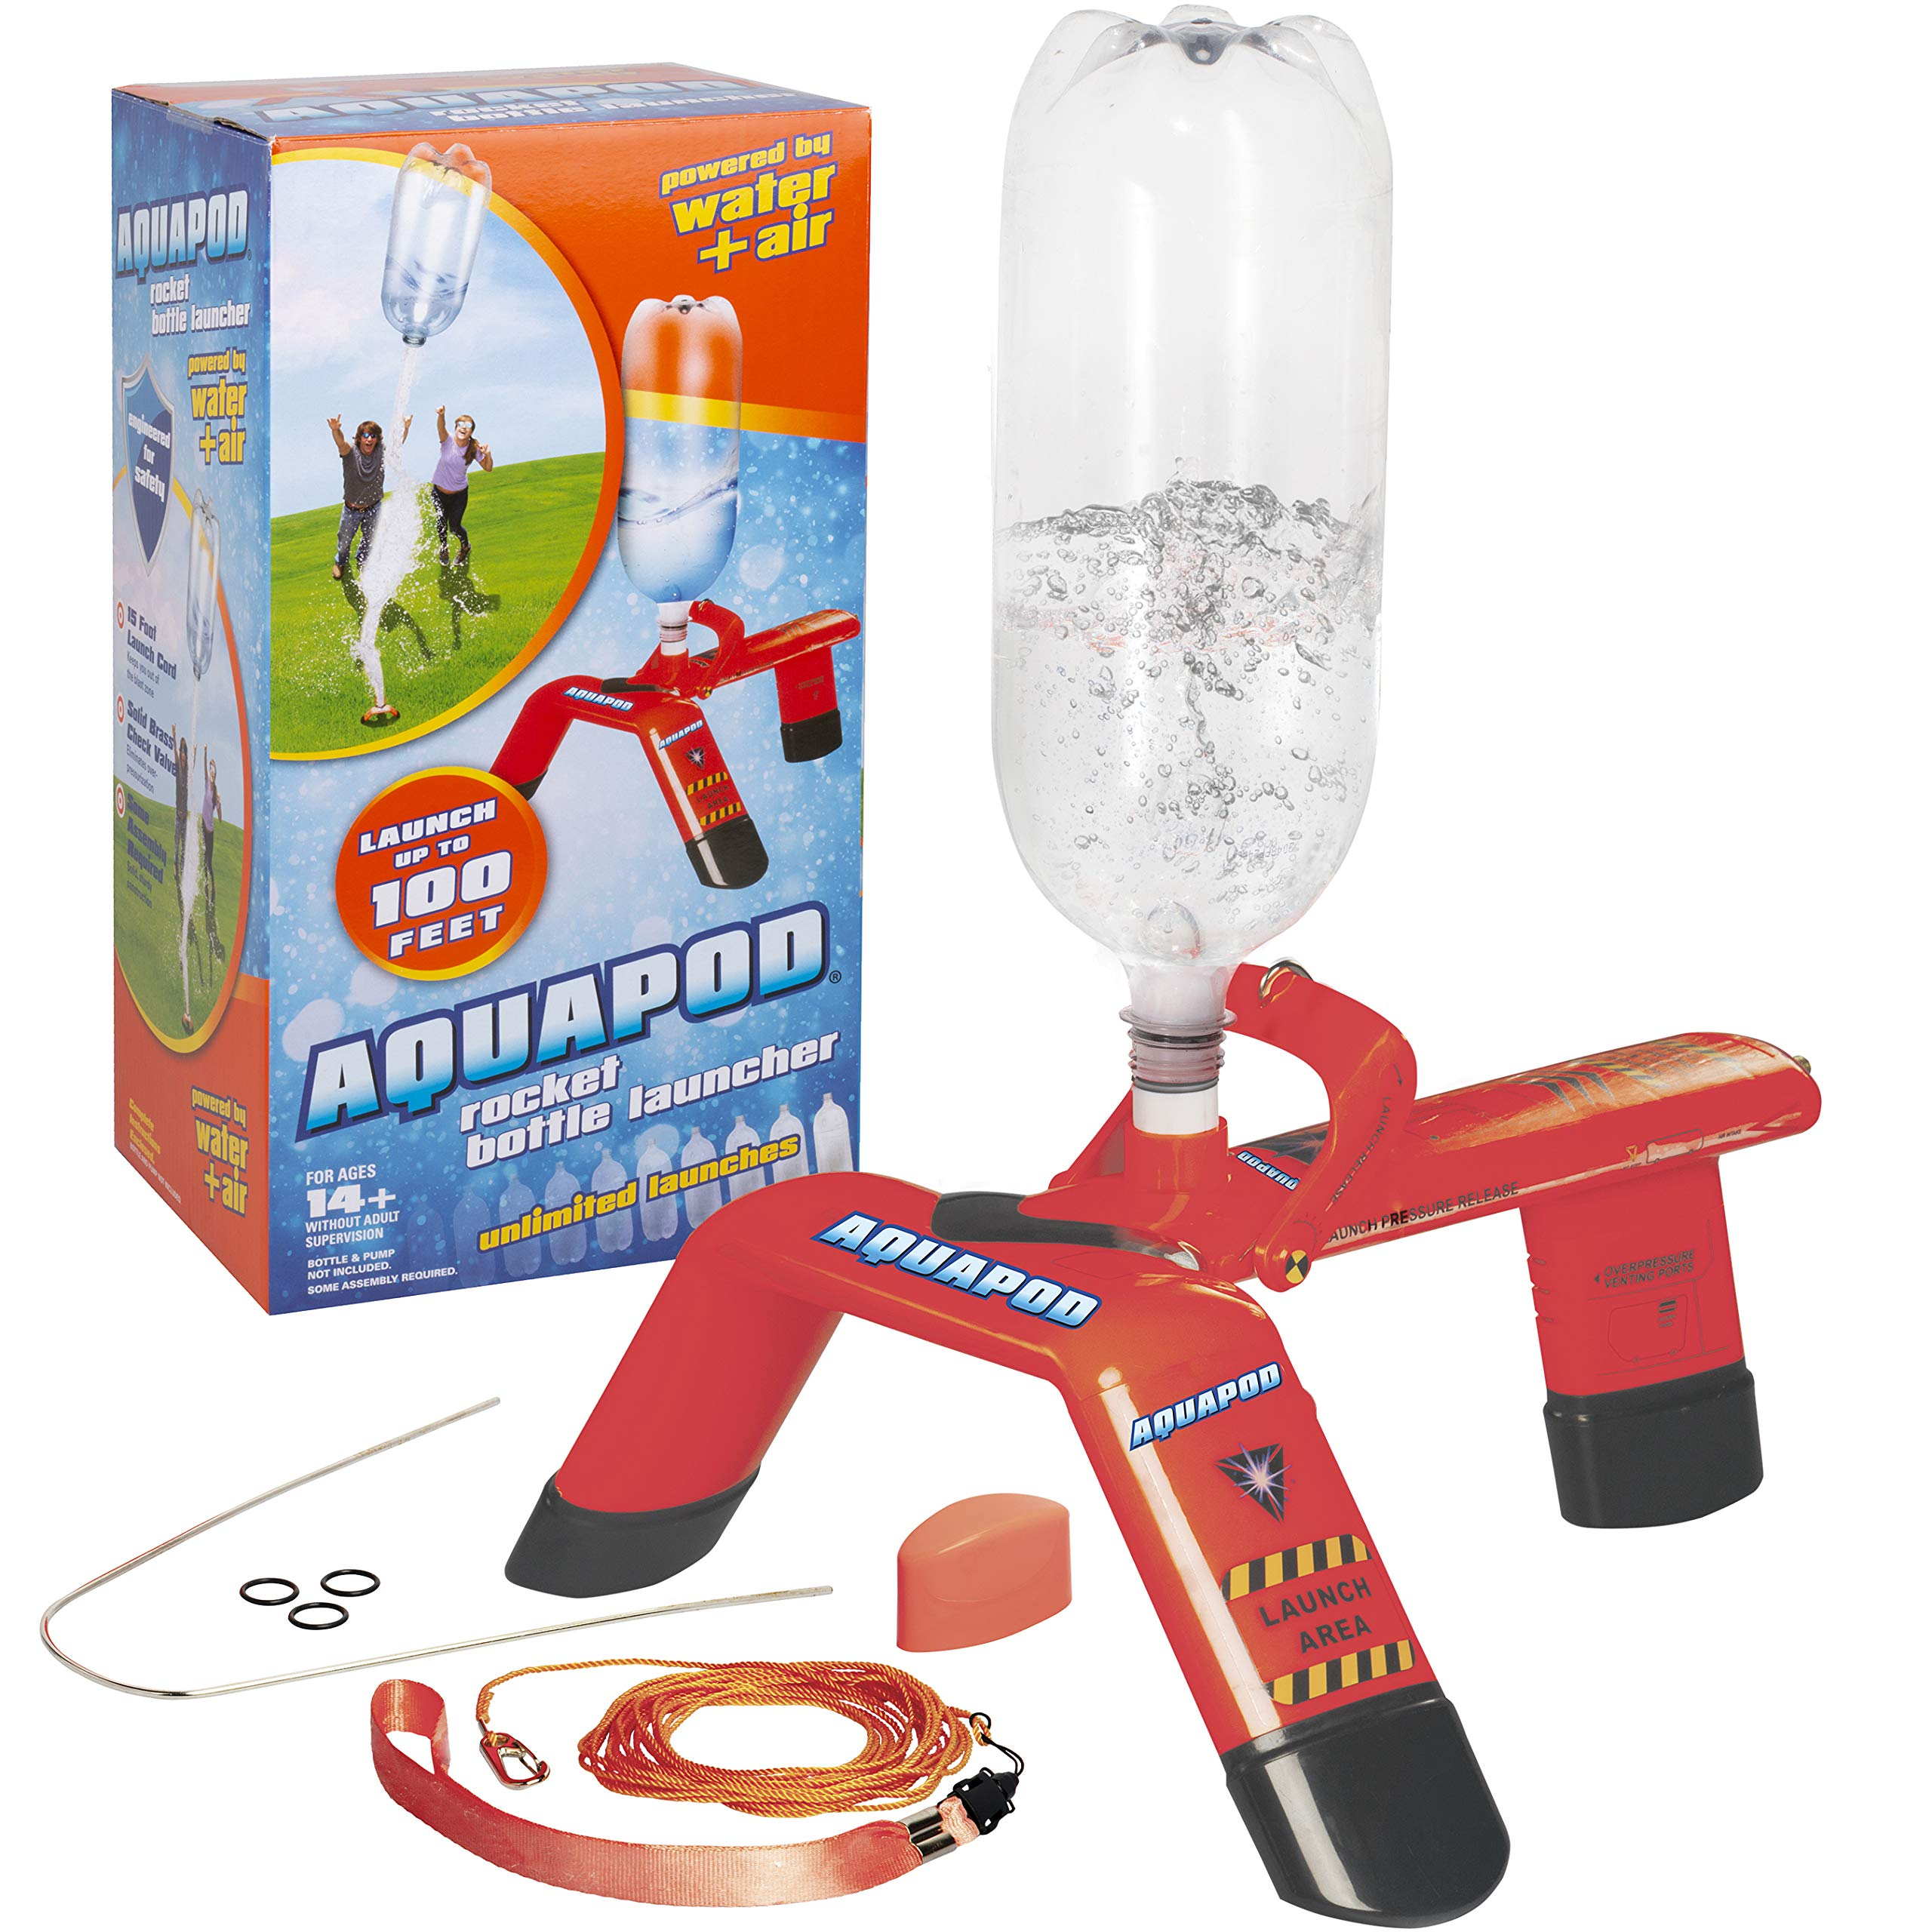 Aquapod Bottle Launcher - Launch 2 Liter Bottles Up to 100 ft in the Air